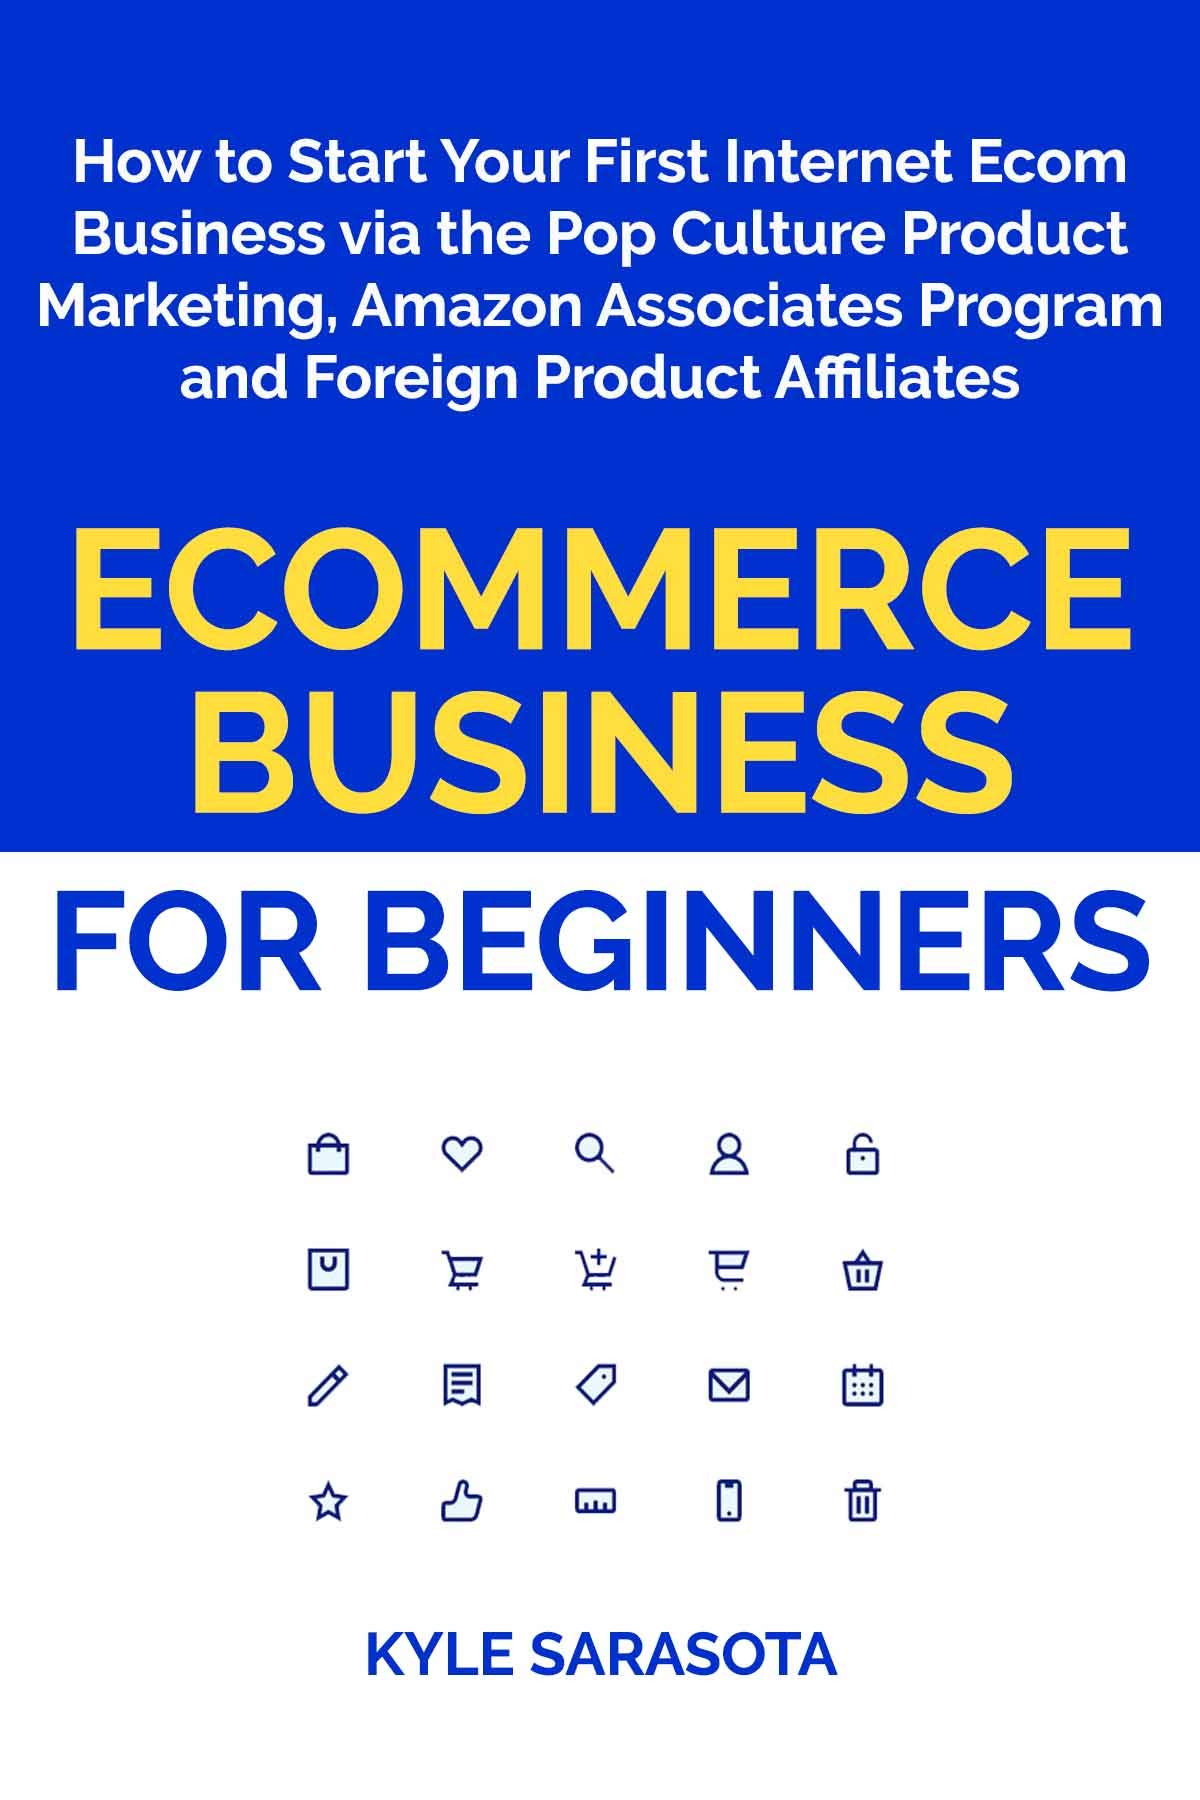 Ecommerce Business For Beginners  How To Start Your First Internet Ecom Business Via The Pop Culture Product Marketing Amazon Associates Program And Foreign ...  Ecom Book Bundle   English Edition